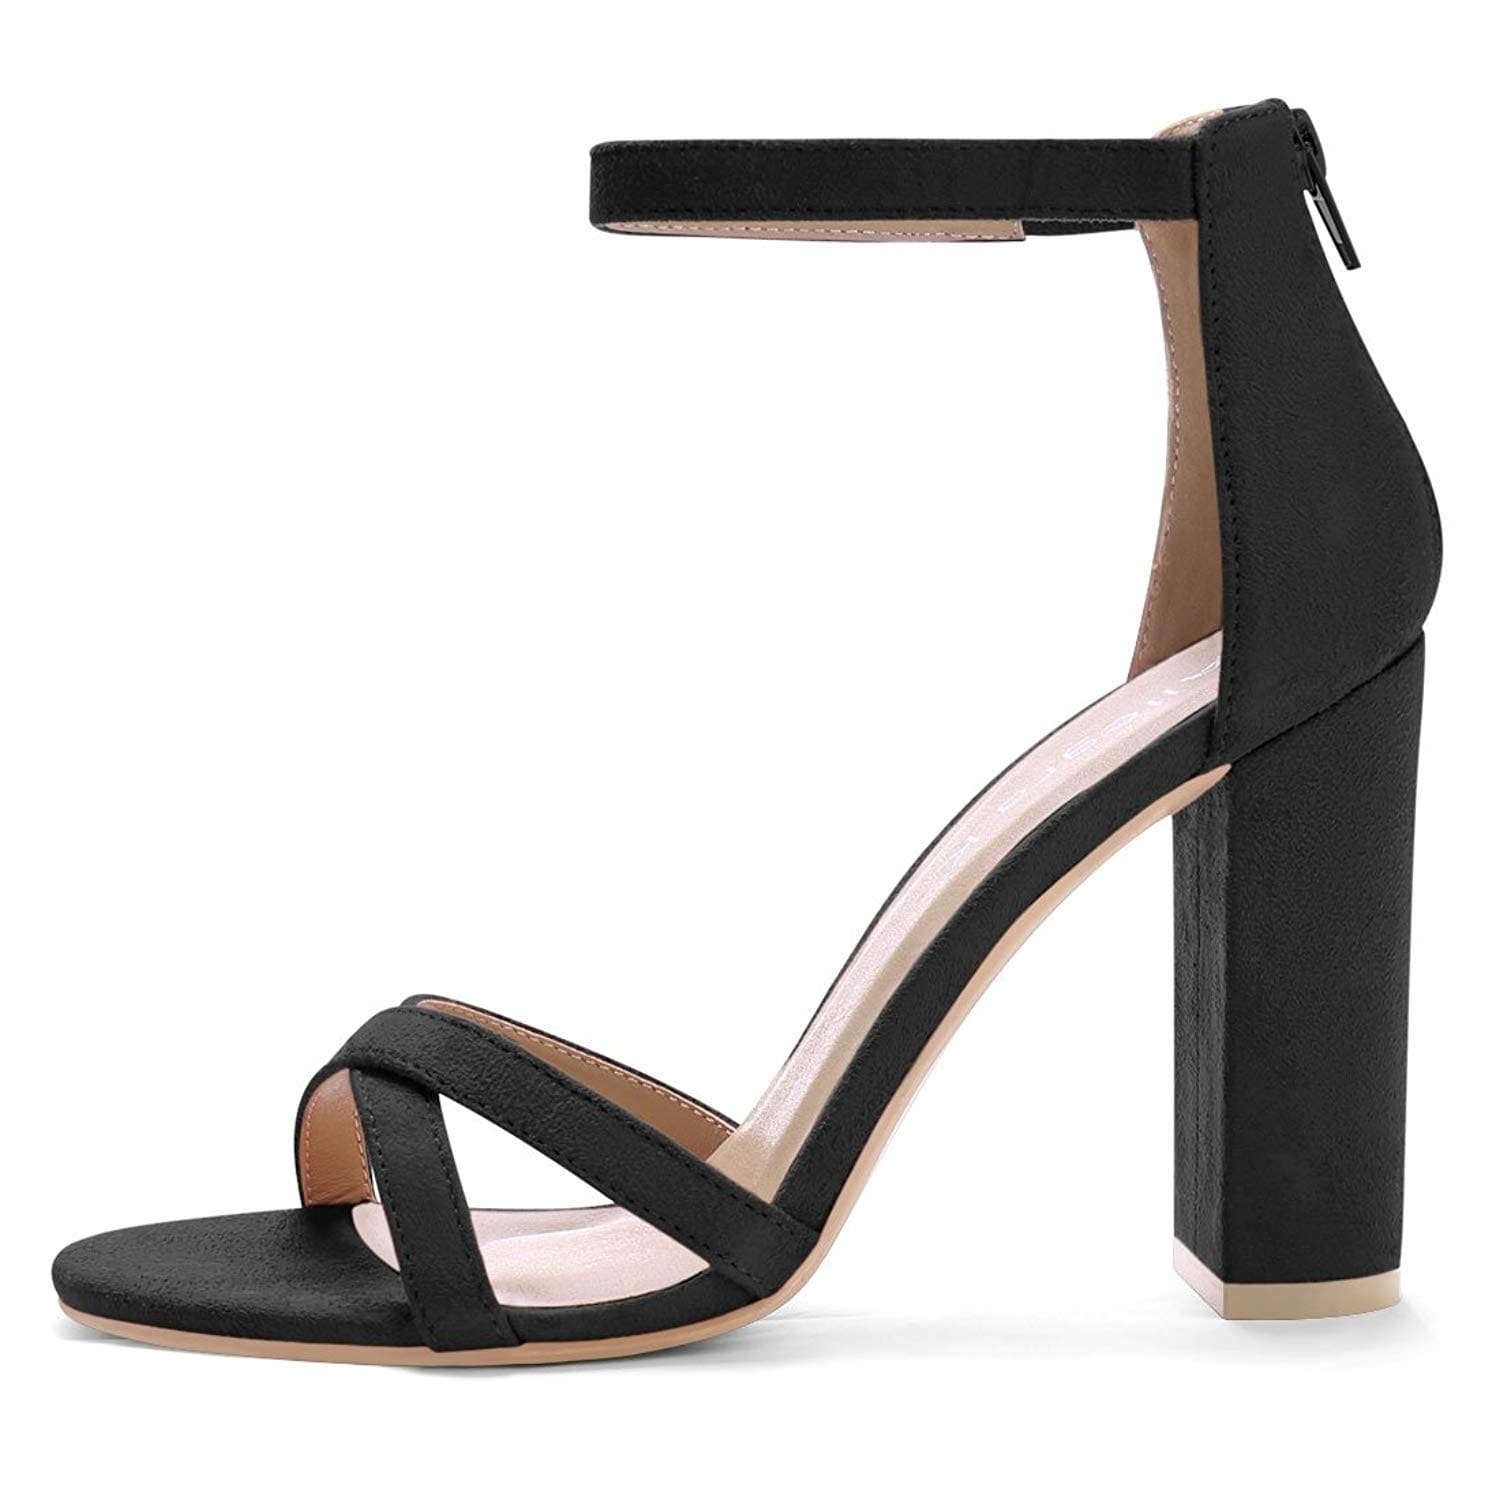 1ea64448232 Allegra K Women's Crisscross Strap Open Toe Block Heel Sandals - 10